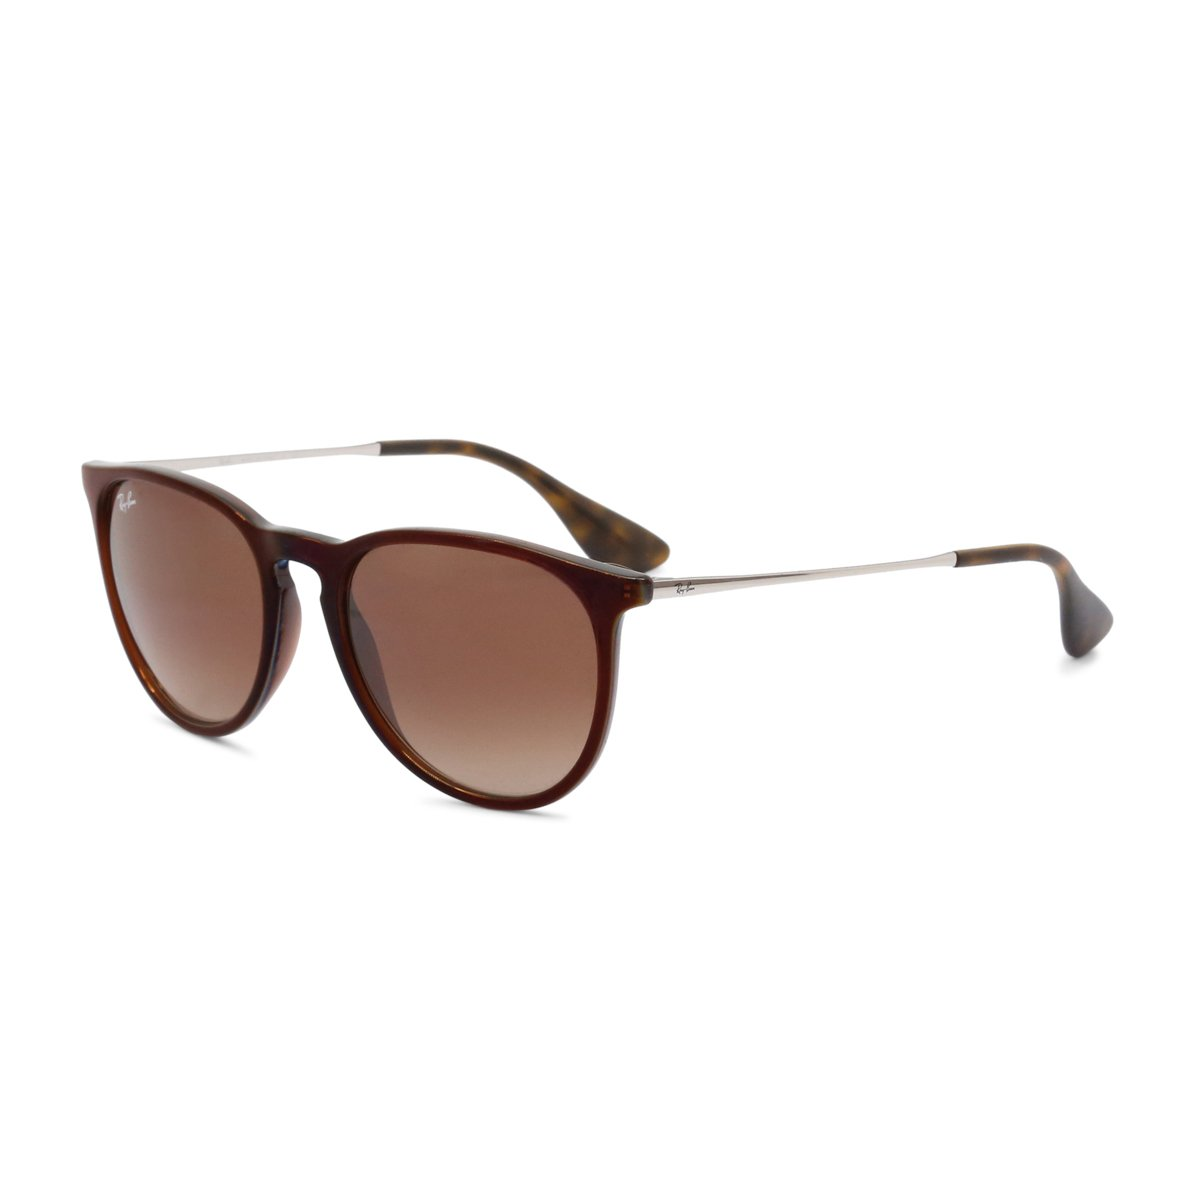 Ray-Ban Unisex Sunglasses Various Colours 0RB4171 - blue NOSIZE